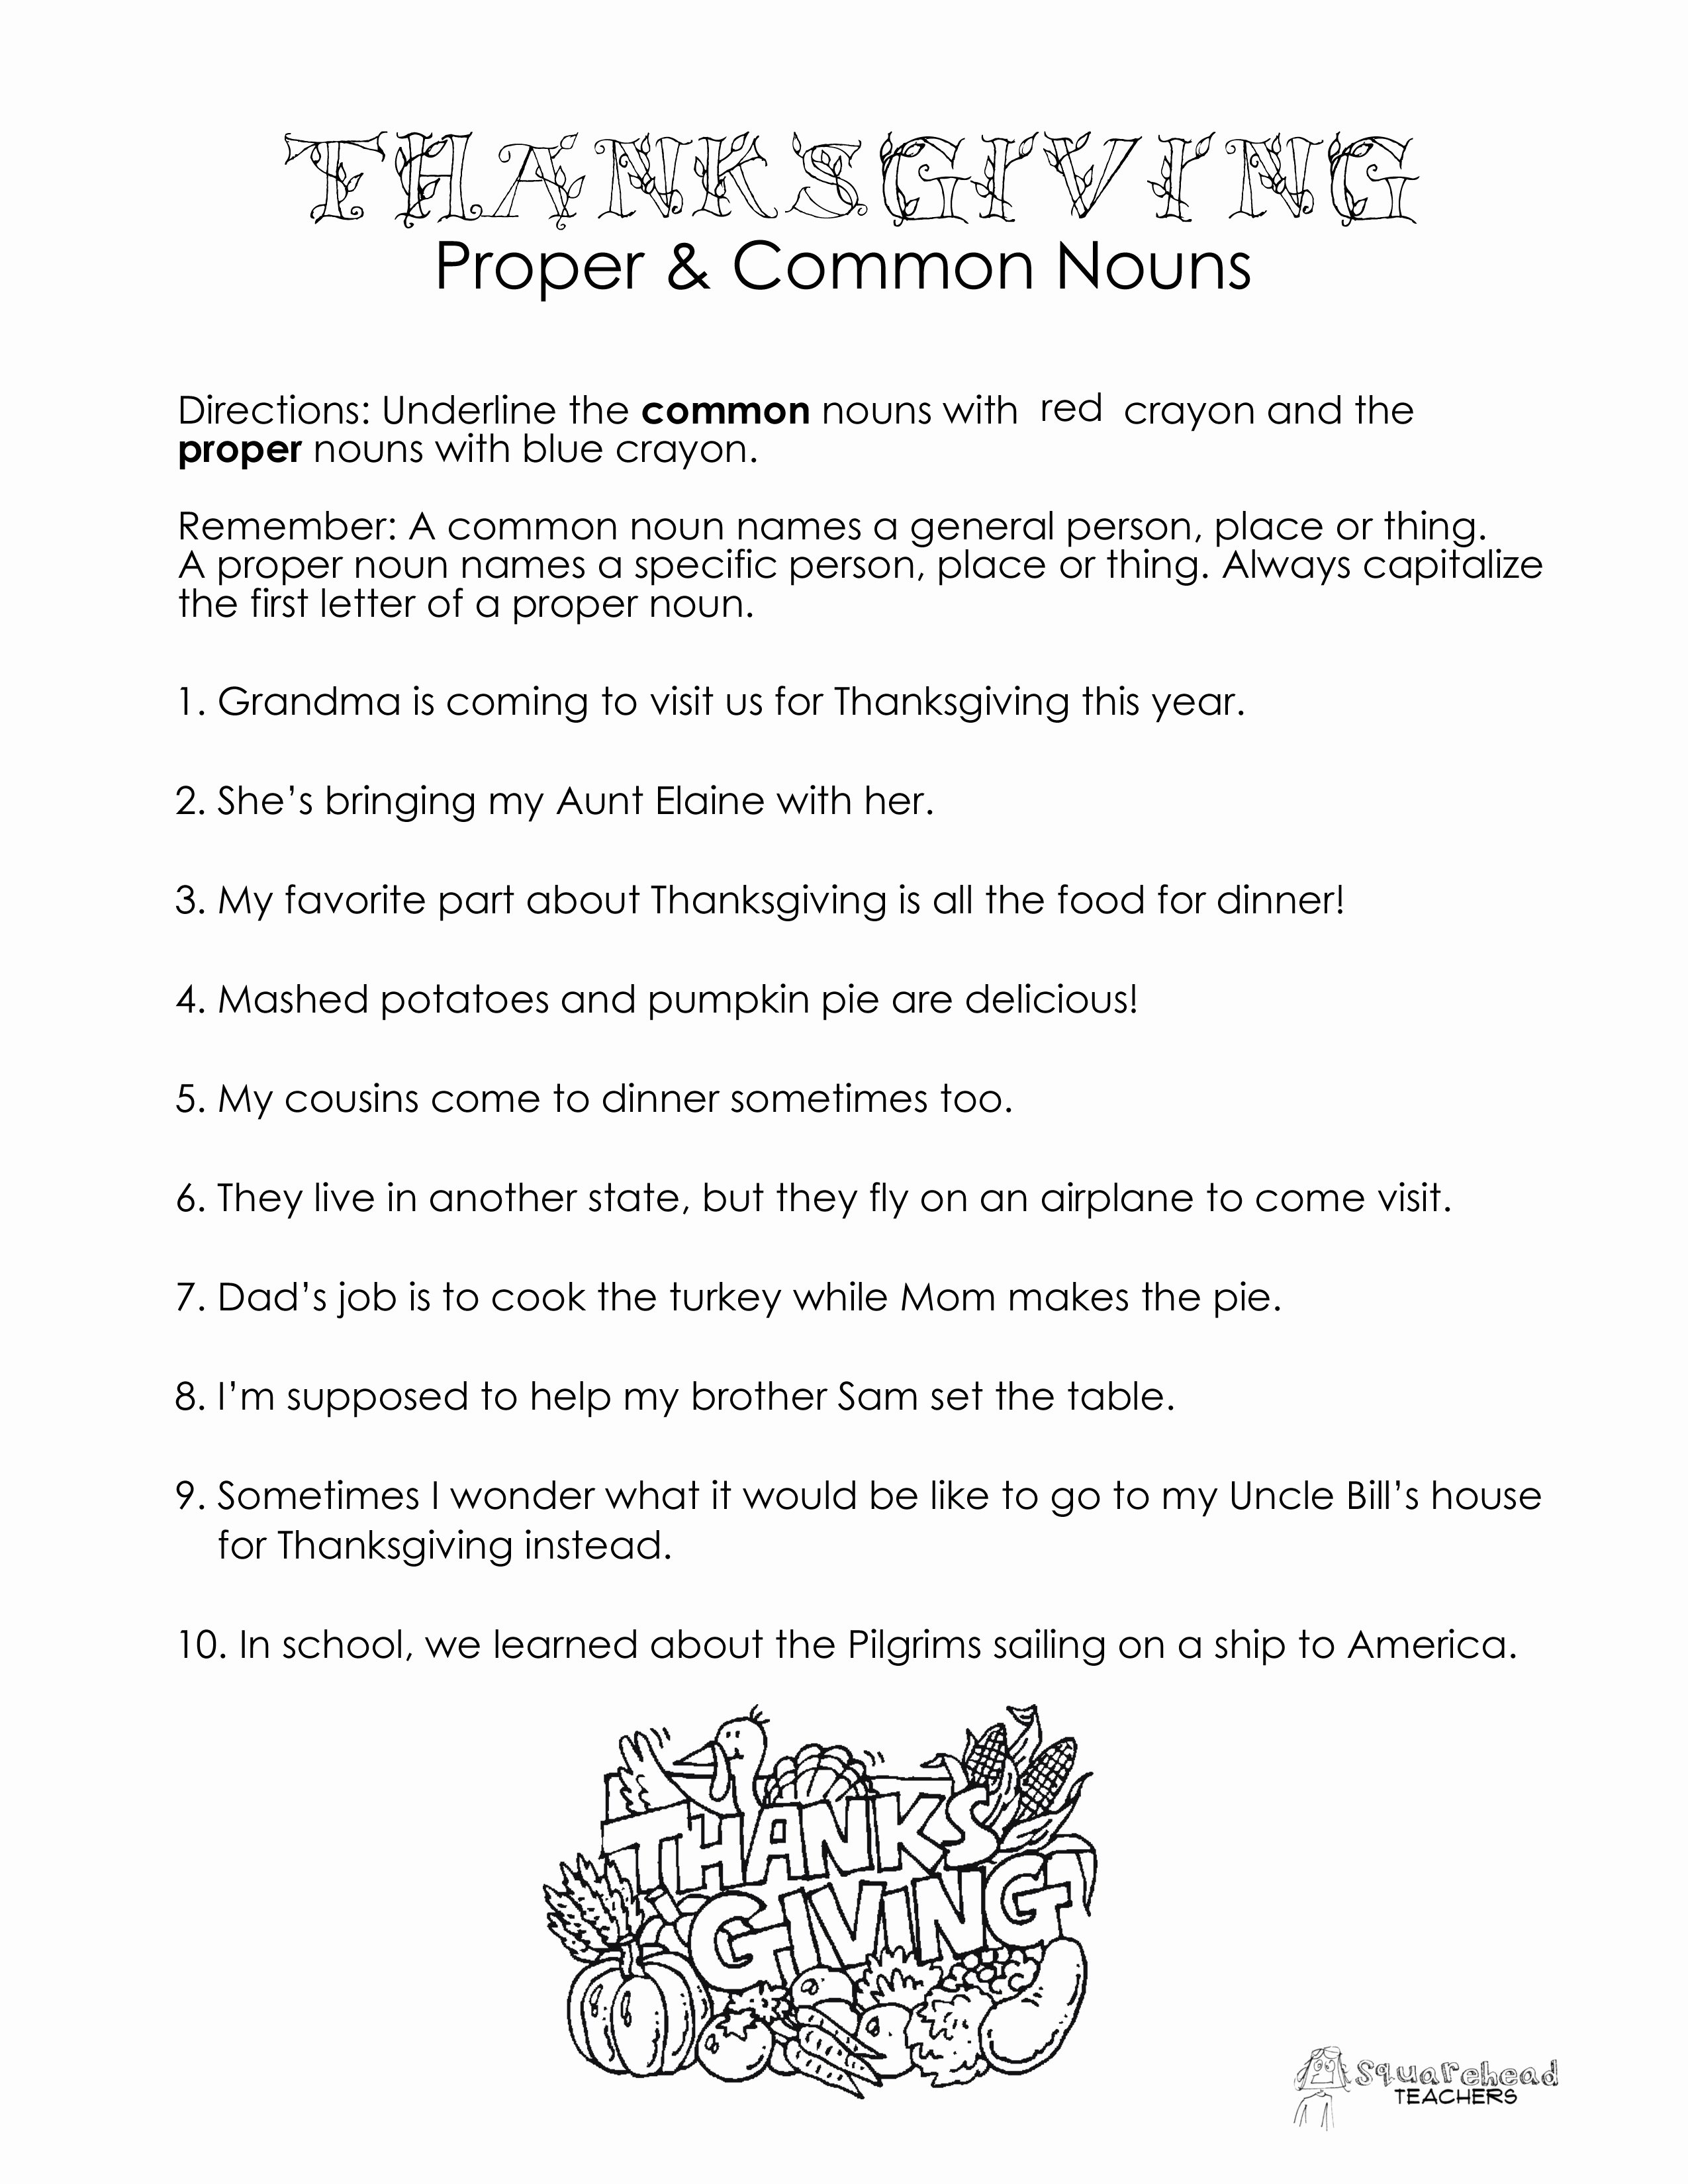 Proper Nouns Worksheet 2nd Grade New November 2012 Squarehead Teachers